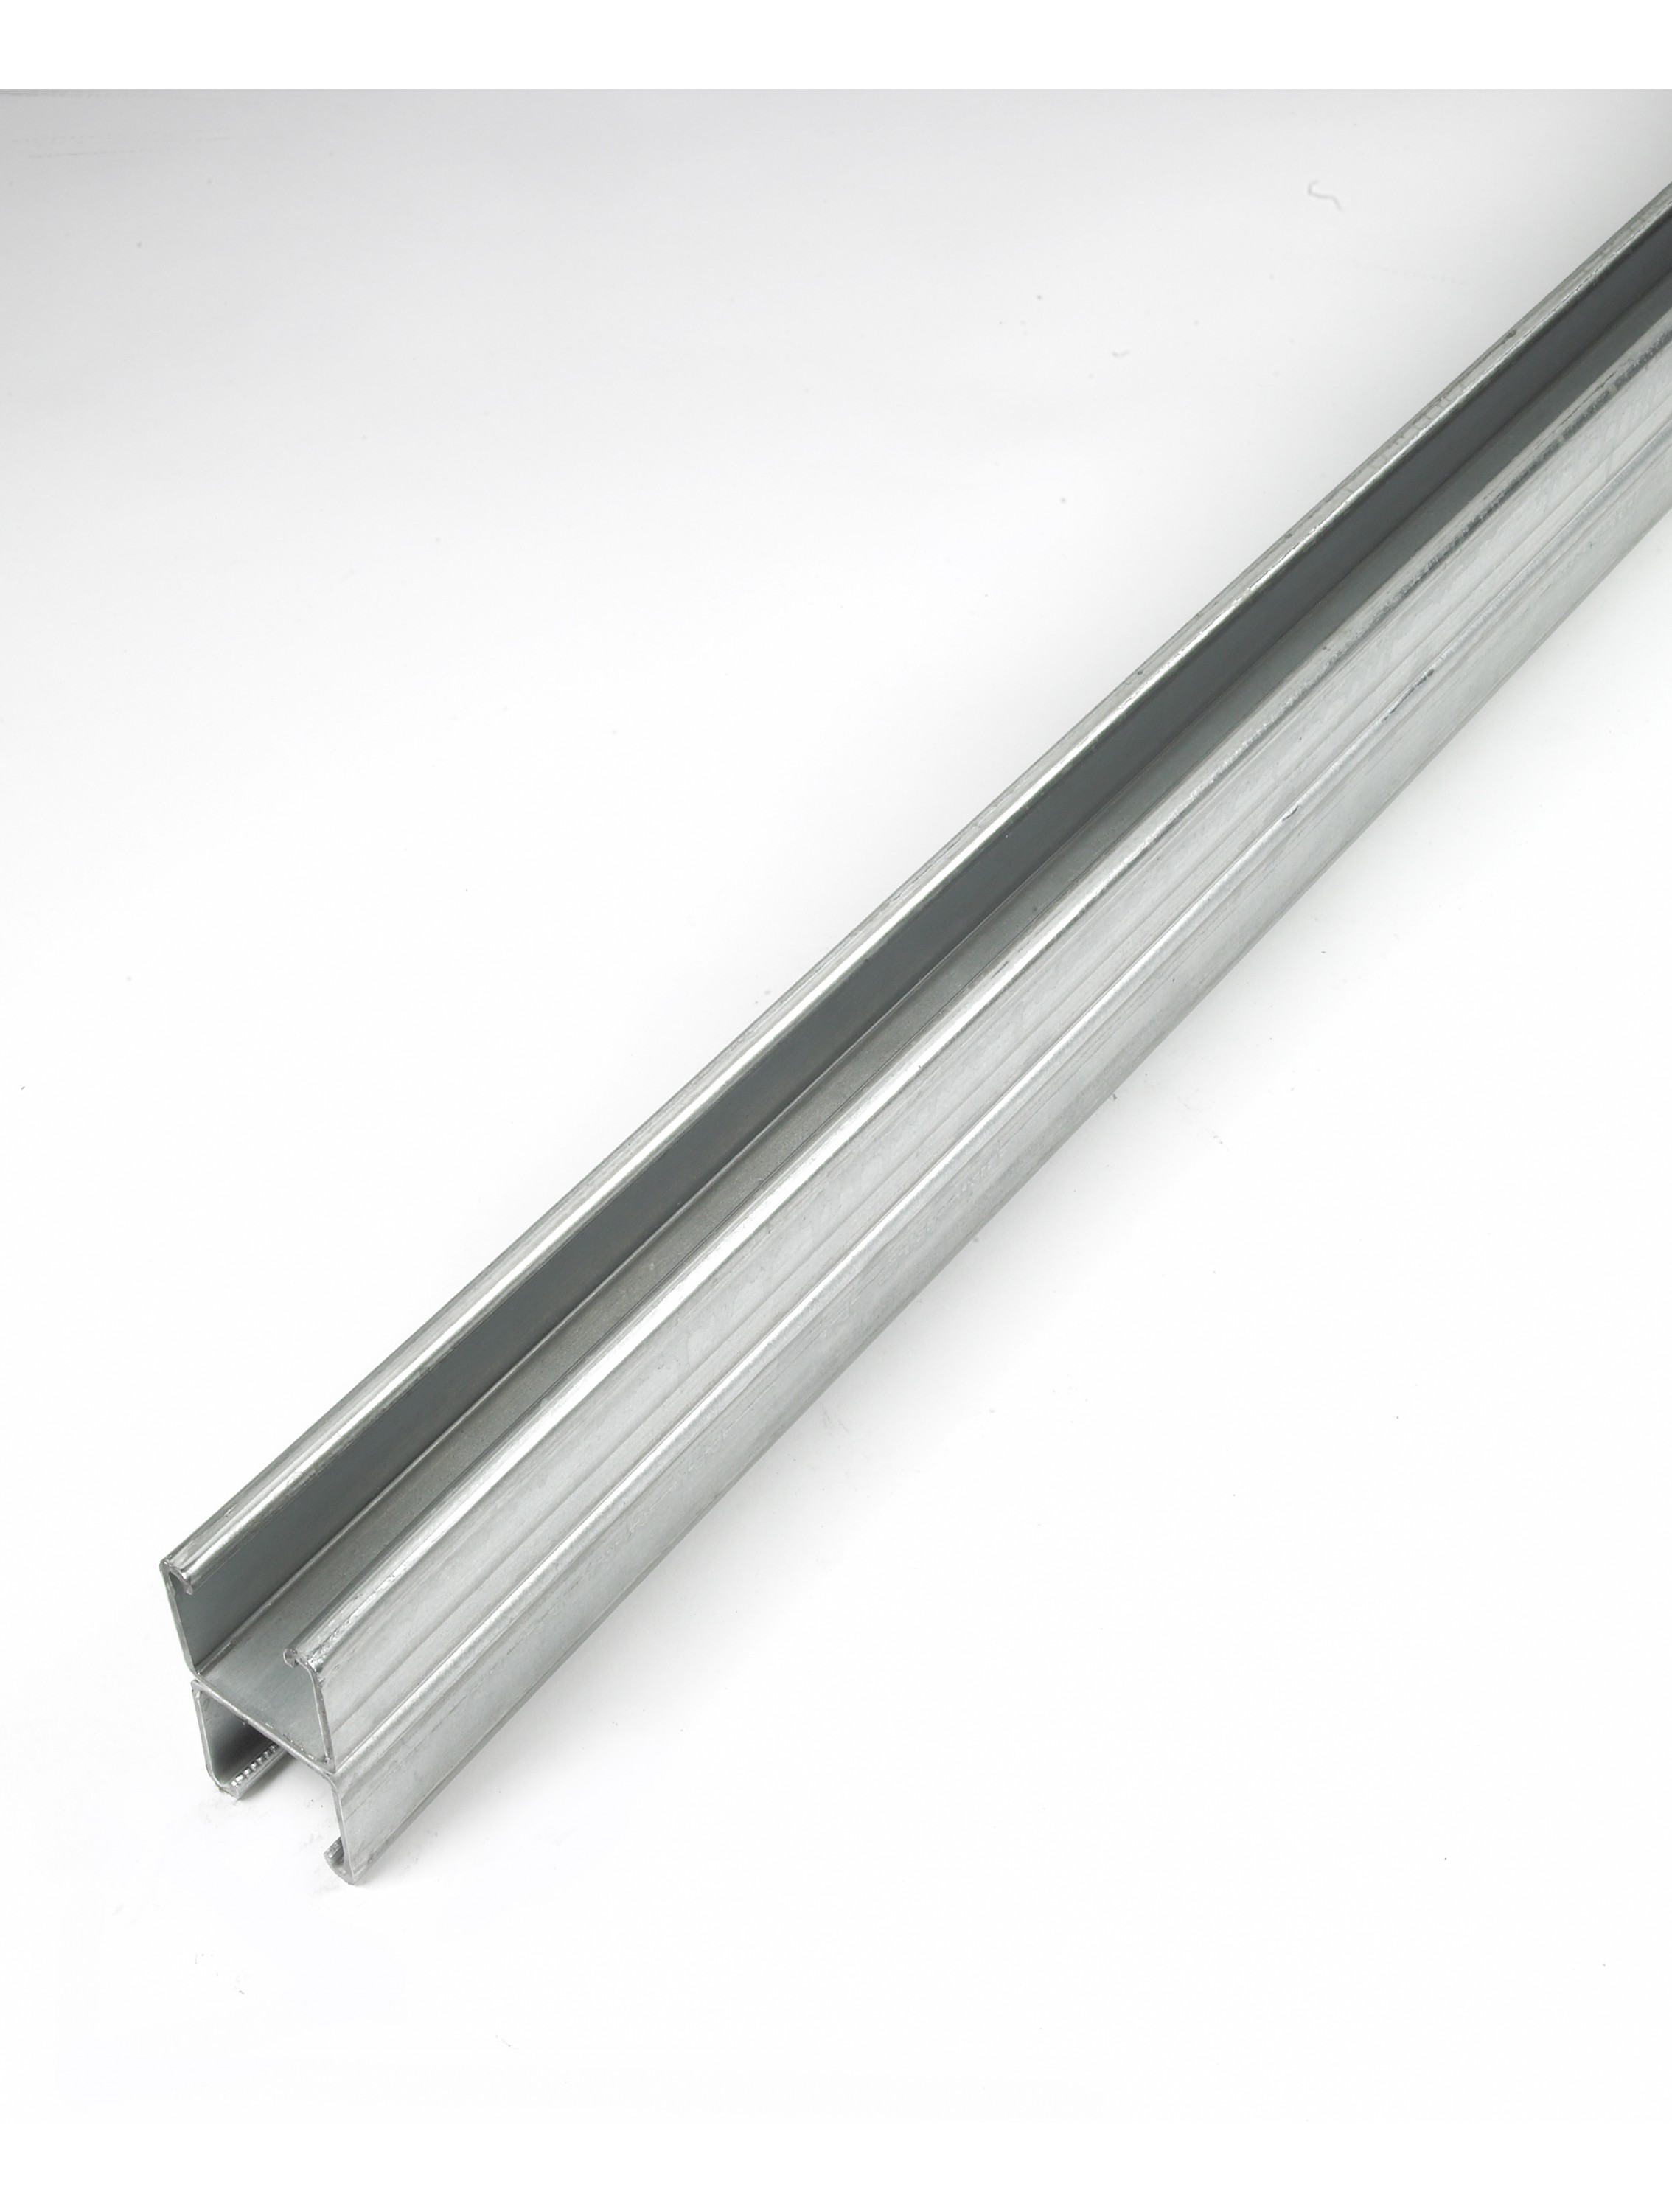 Unistrut Channel 41x82 Back to Back Hot Dip Galvanised 6m (P1001H)